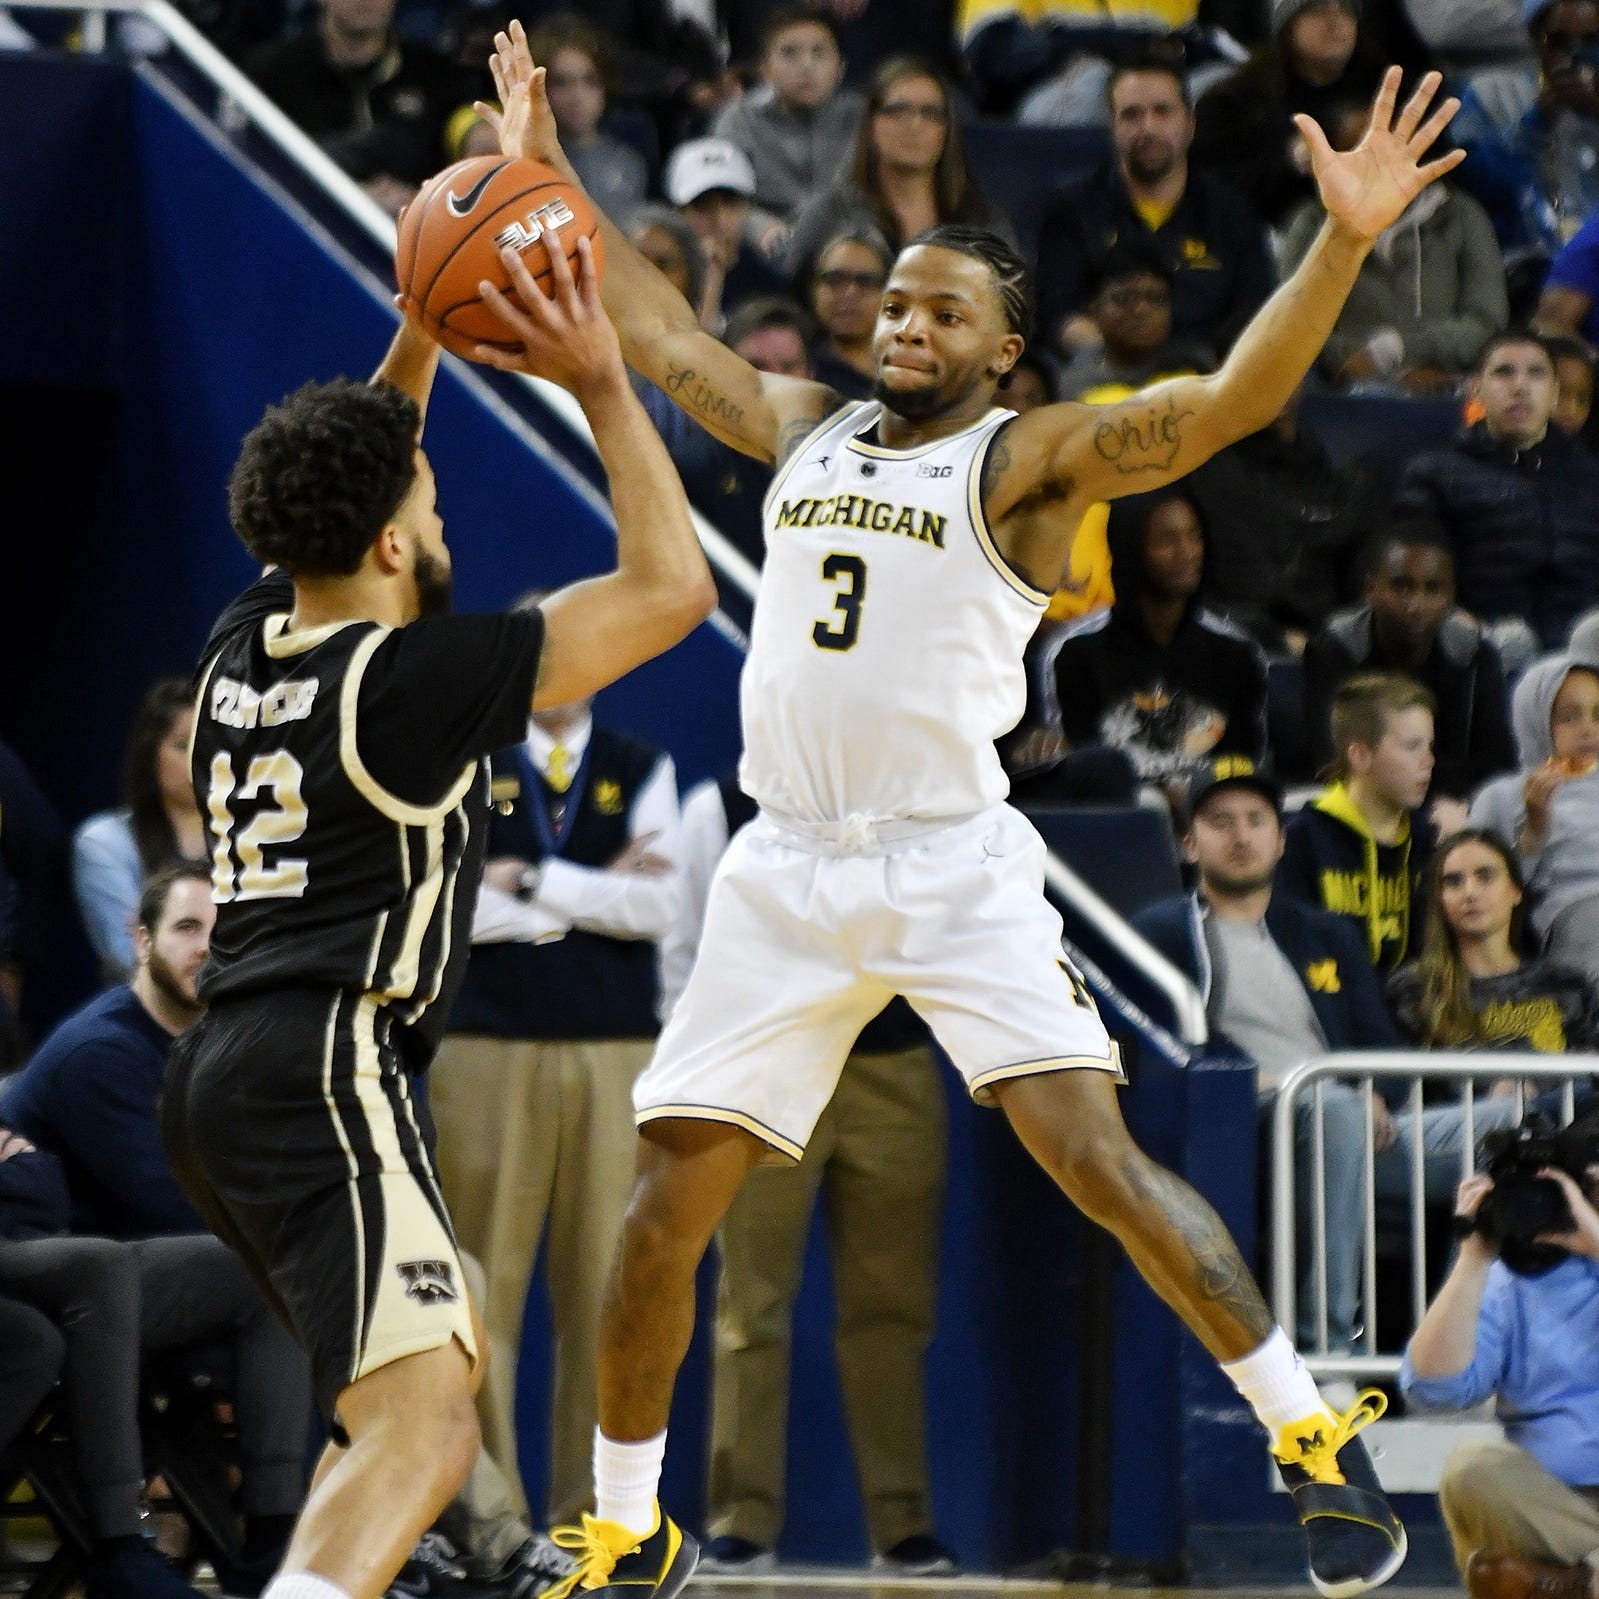 Michigan climbs to No. 4, Michigan State drops to No. 10 in AP basketball poll